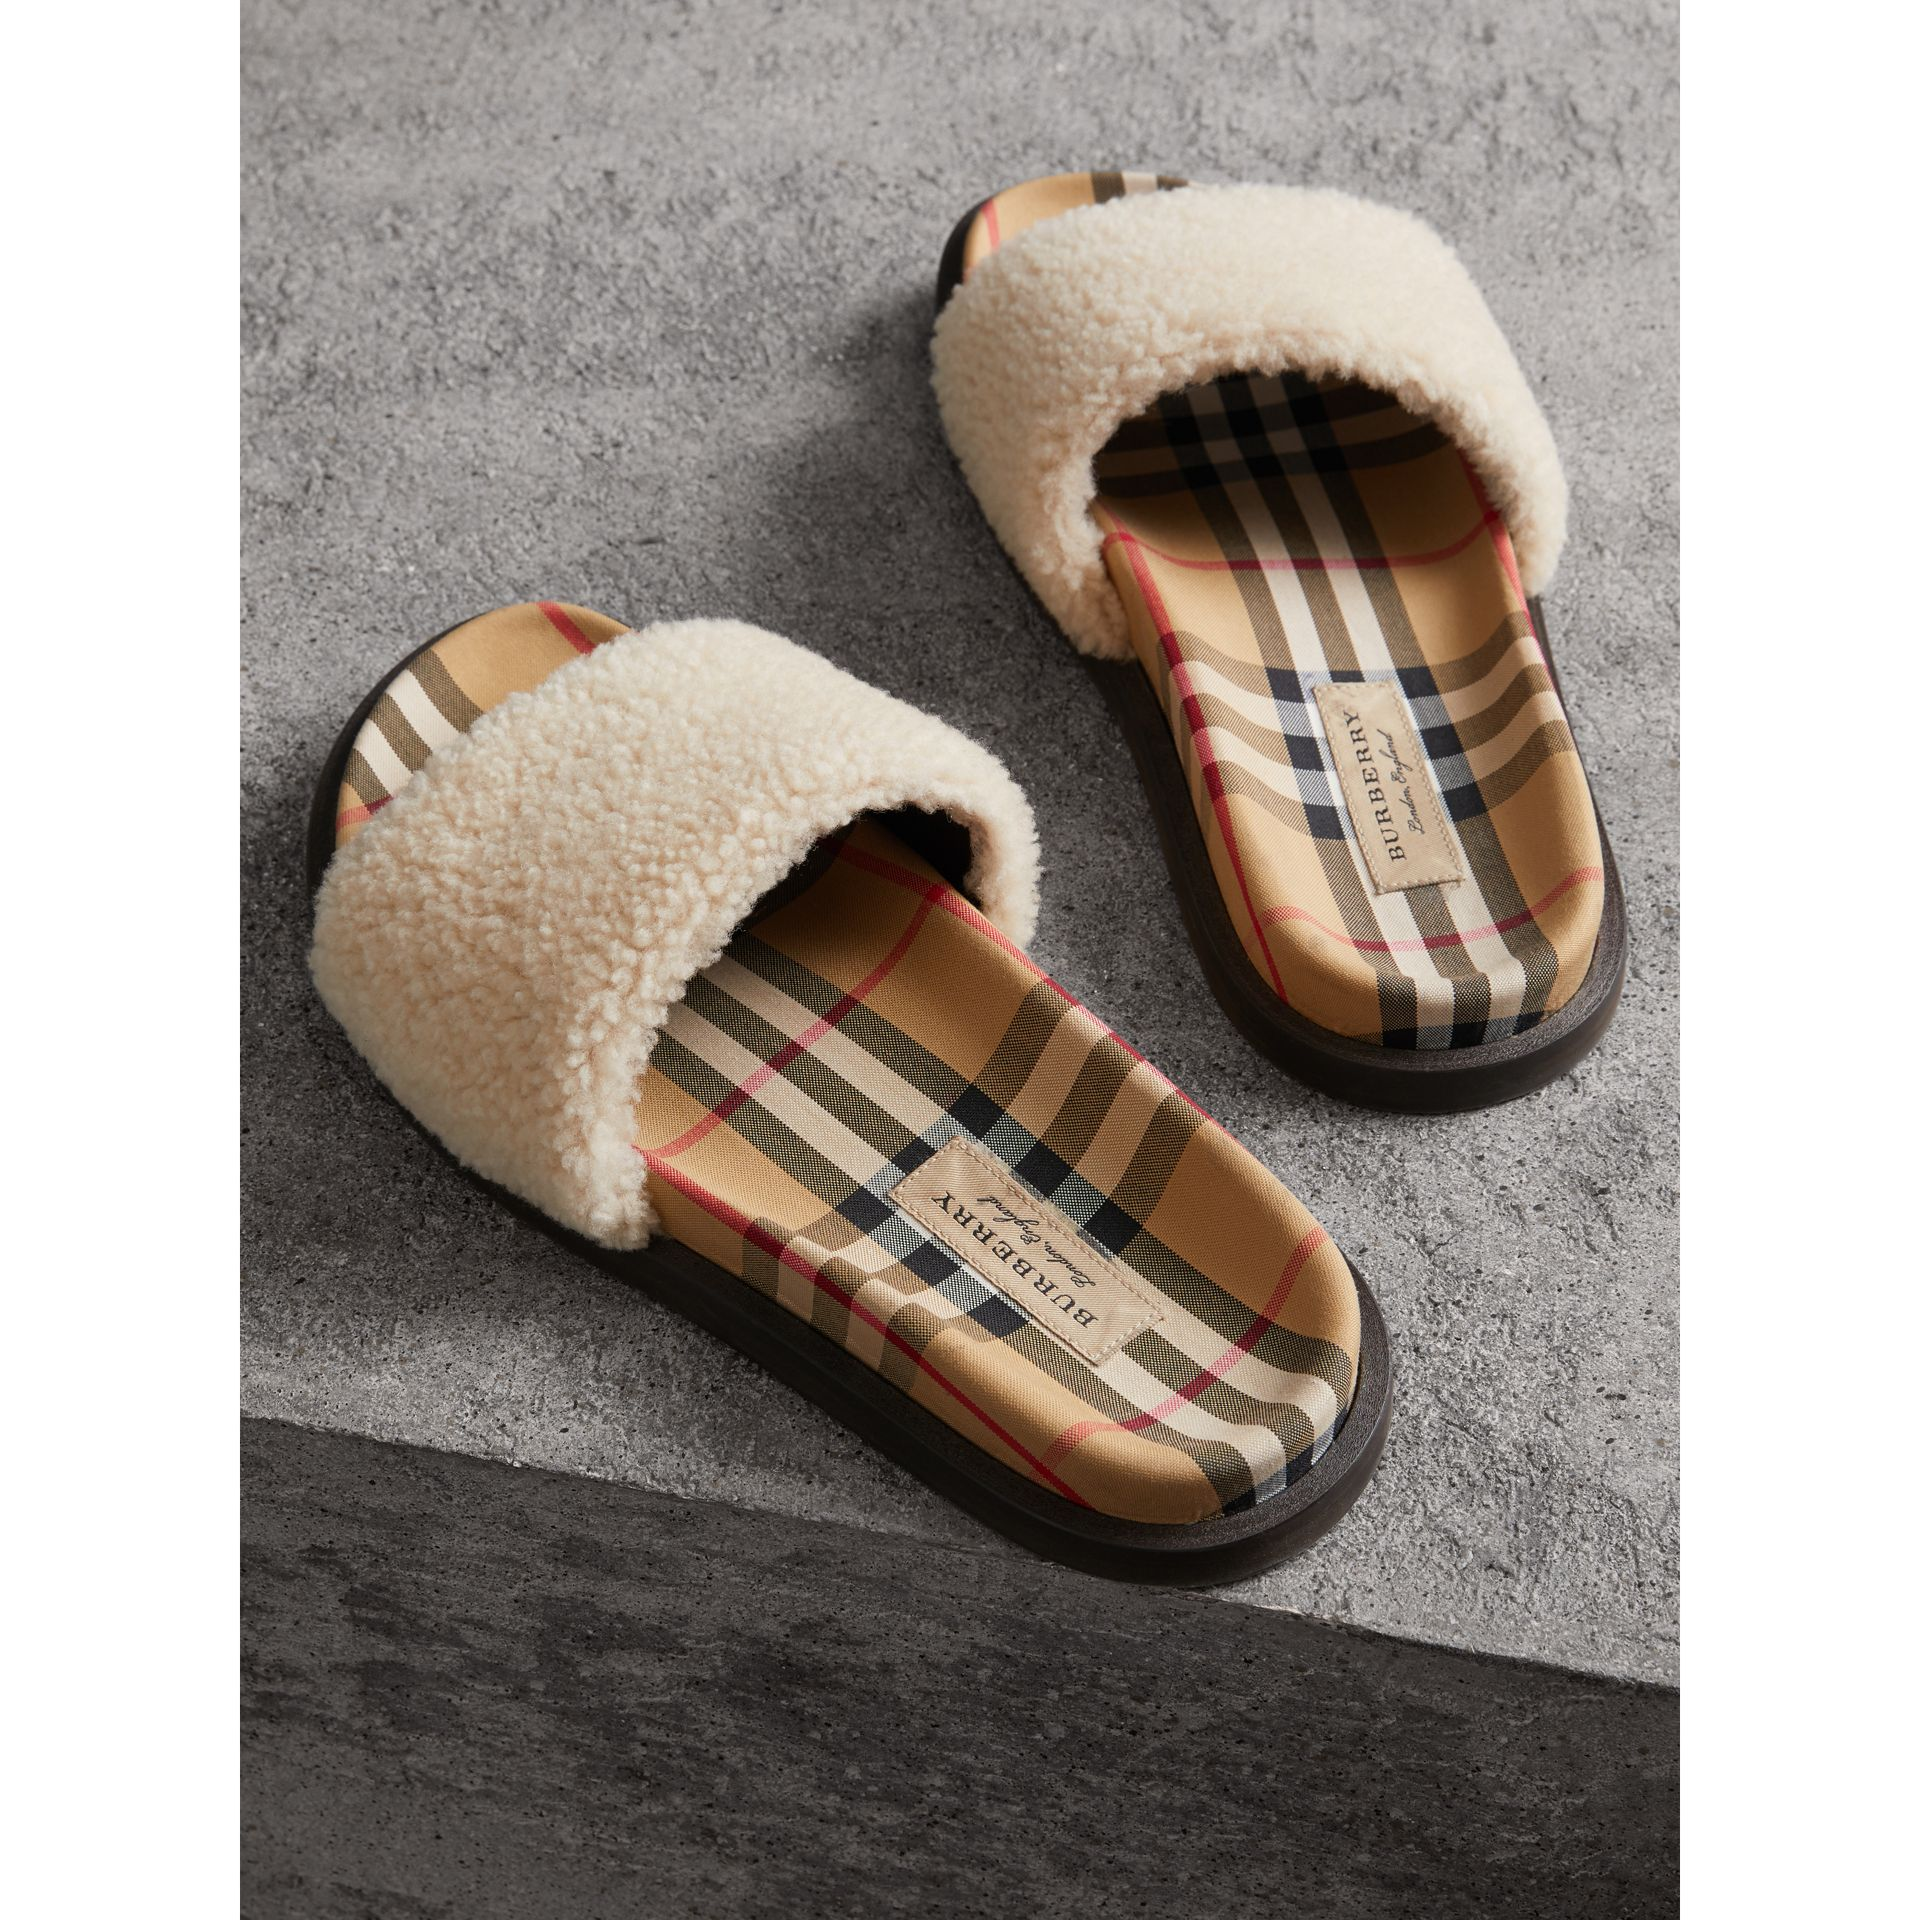 Shearling and Vintage Check Slides in Natural - Women | Burberry - gallery image 3